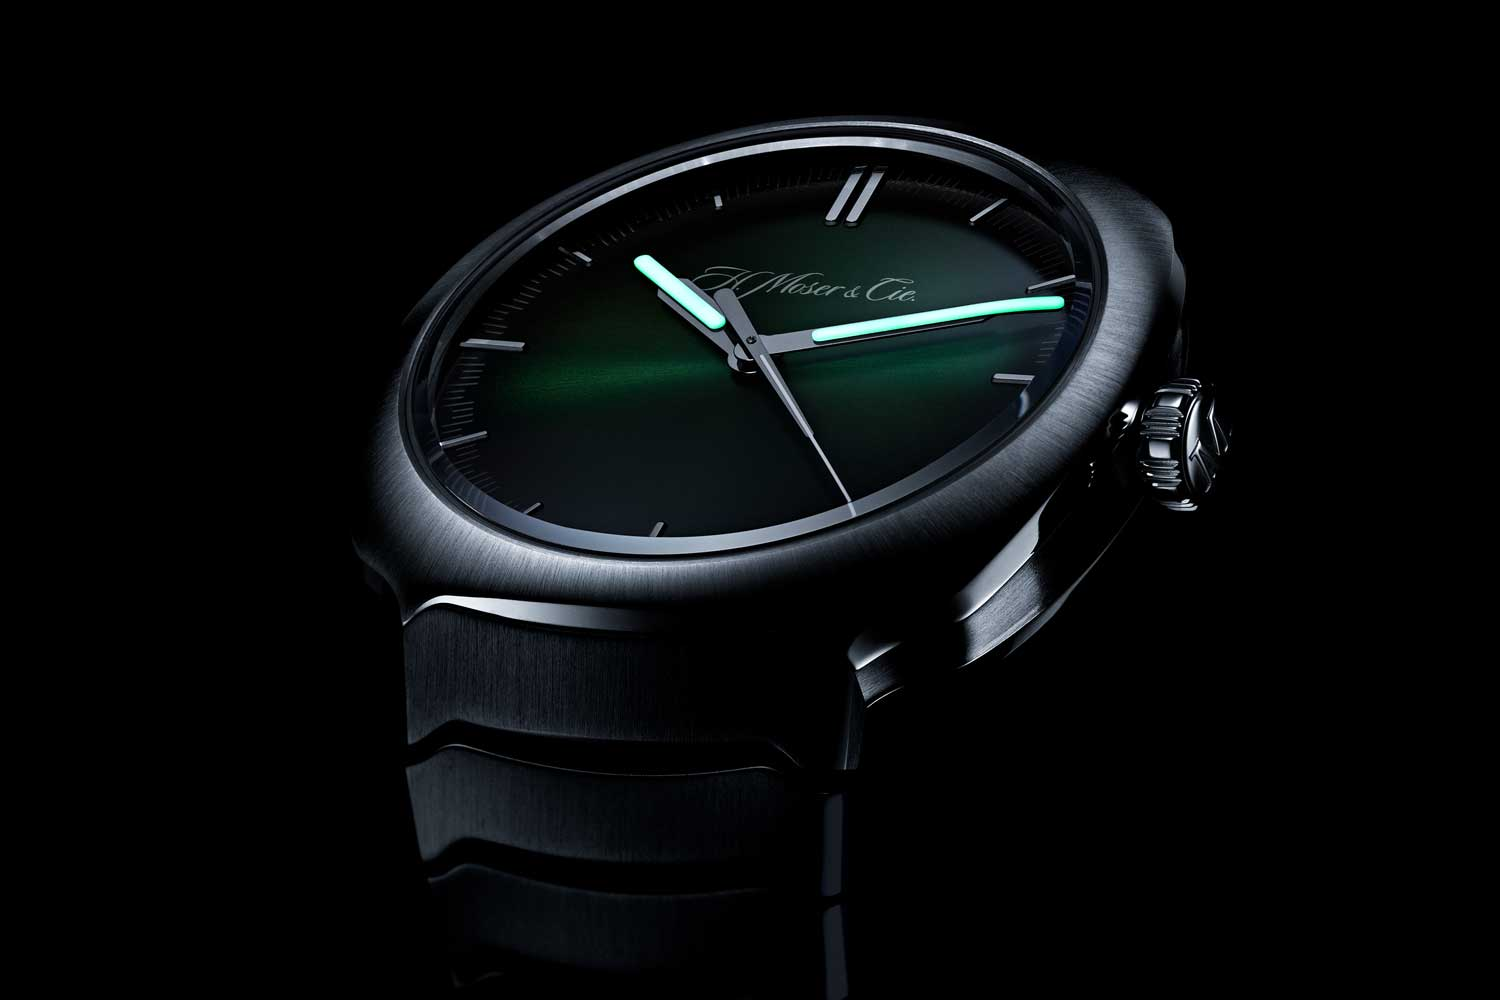 A distinctive H.Moser signature, the Matrix Green fumé dial of the Streamliner Centre Seconds is more magic than manufactured.